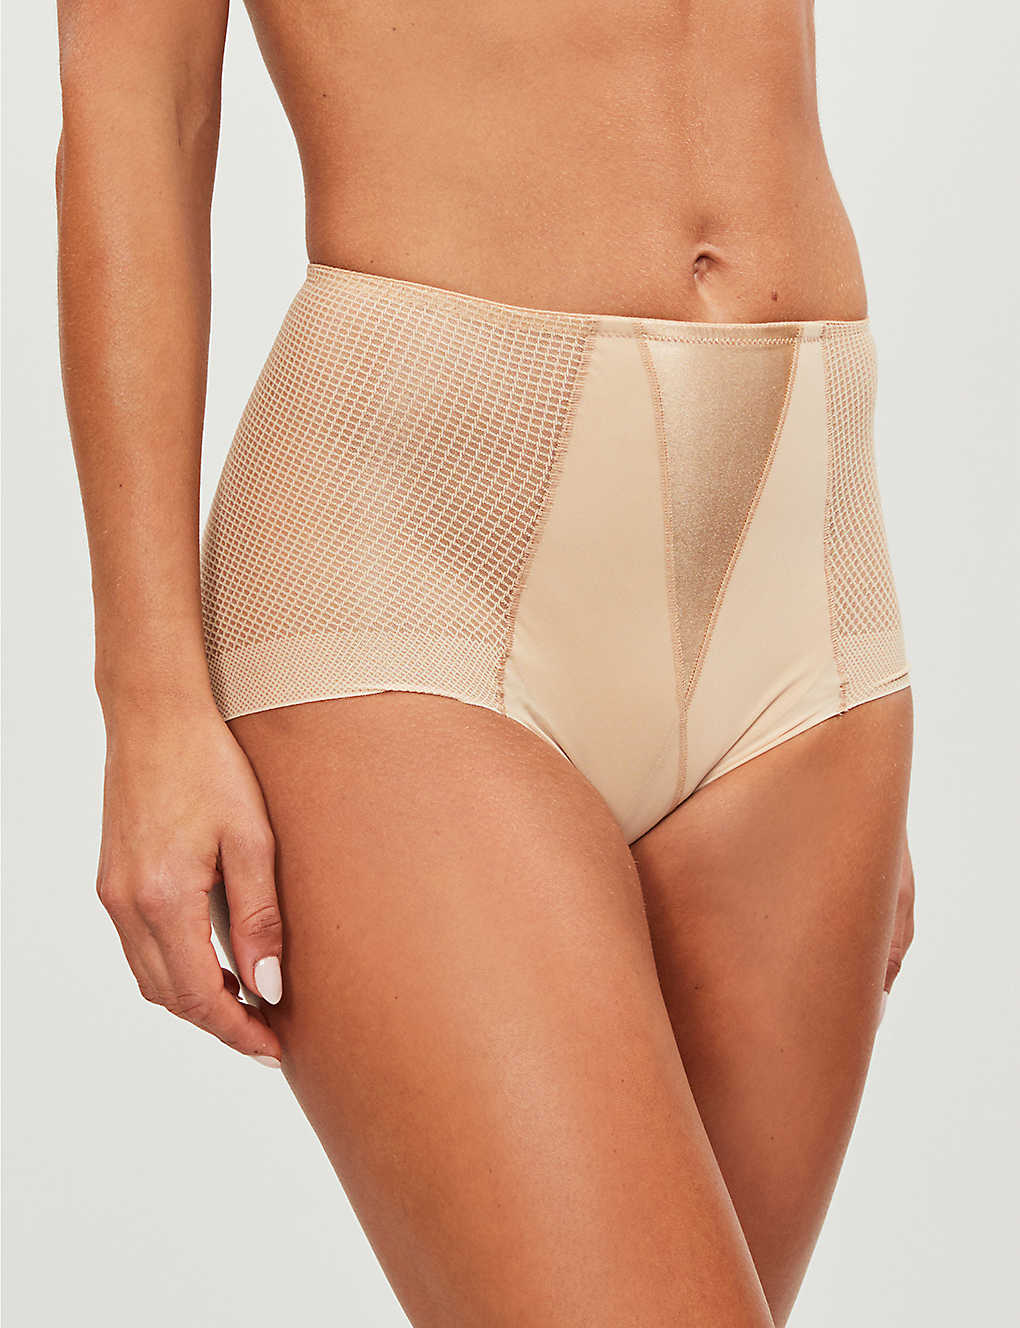 MAISON LEJABY: Silhouette mesh shaping briefs